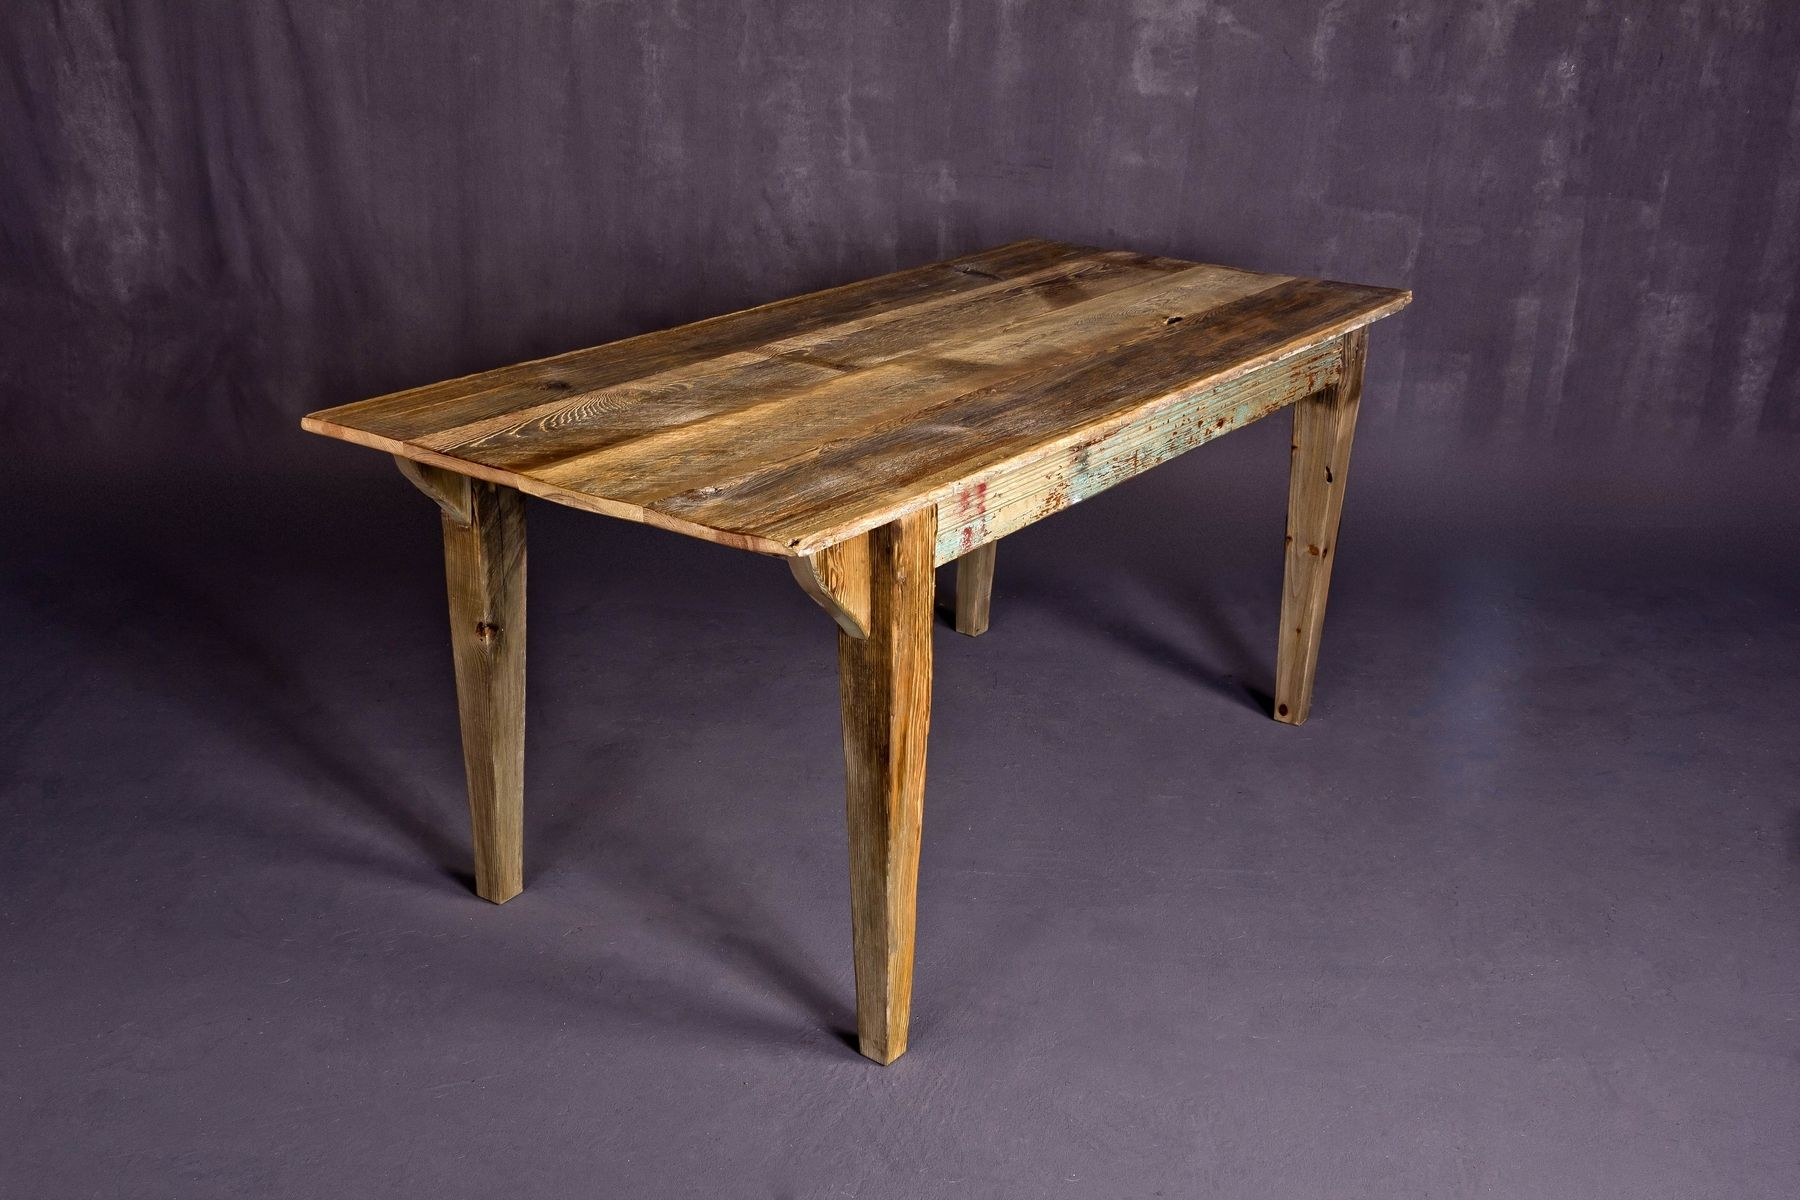 Custom Reclaimed Barn Wood Dining Table By Heirloom Llc